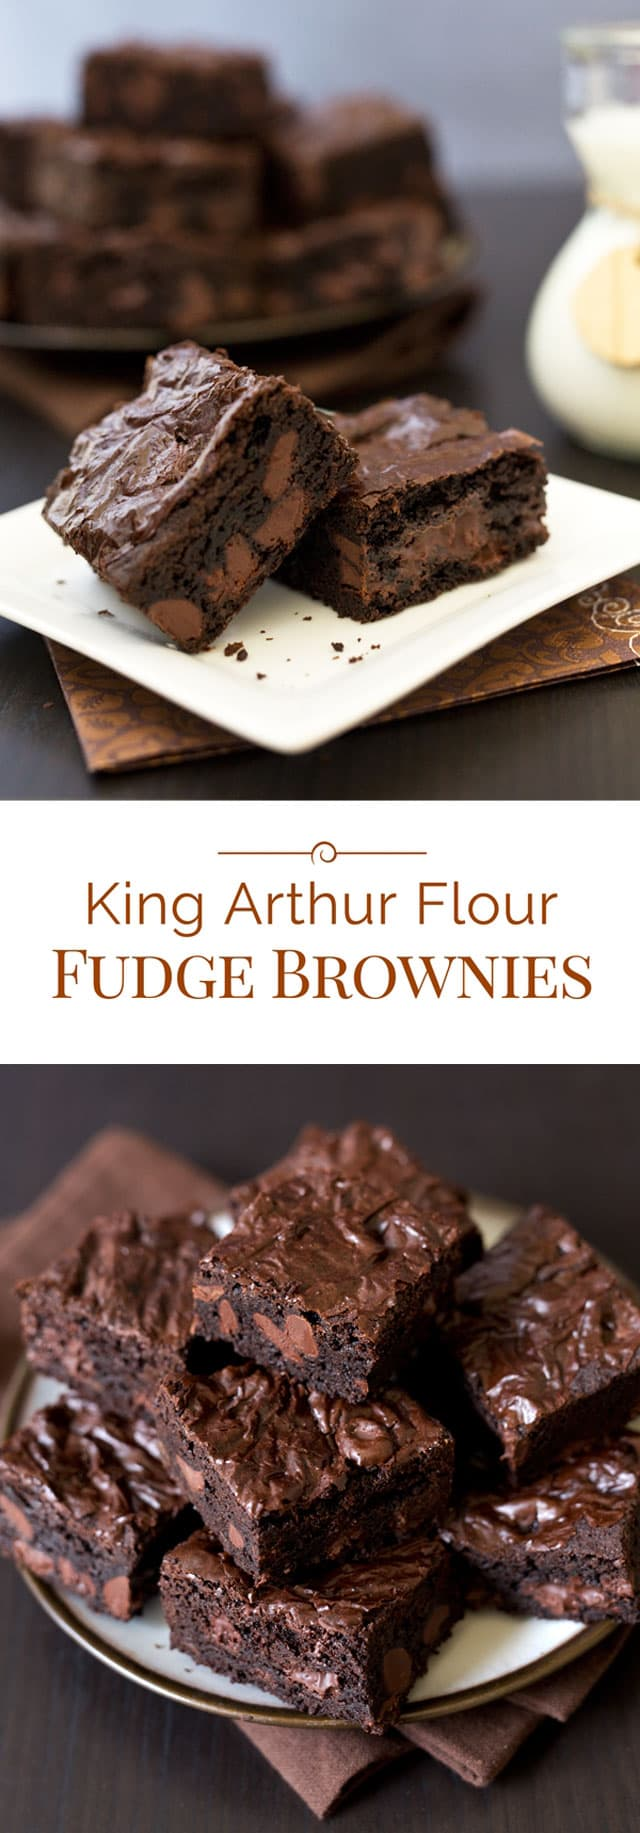 These King Arthur Flour Fudge Brownies are the best brownies I have ever made. A perfect balance of fudgy with just a touch of cakey.